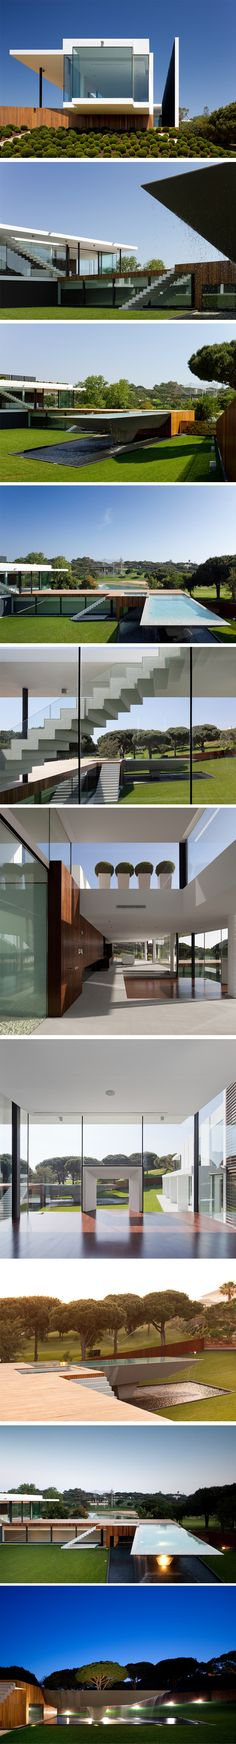 Casa Vale Do Lobo by Arqui+Arquitectura, Portugal///////www.bedreakustik.dk/home DISCOUNT TO PINTEREST CUSTOMERS Dedicated to deliver superior interior acoustic experience.#pinoftheday///////